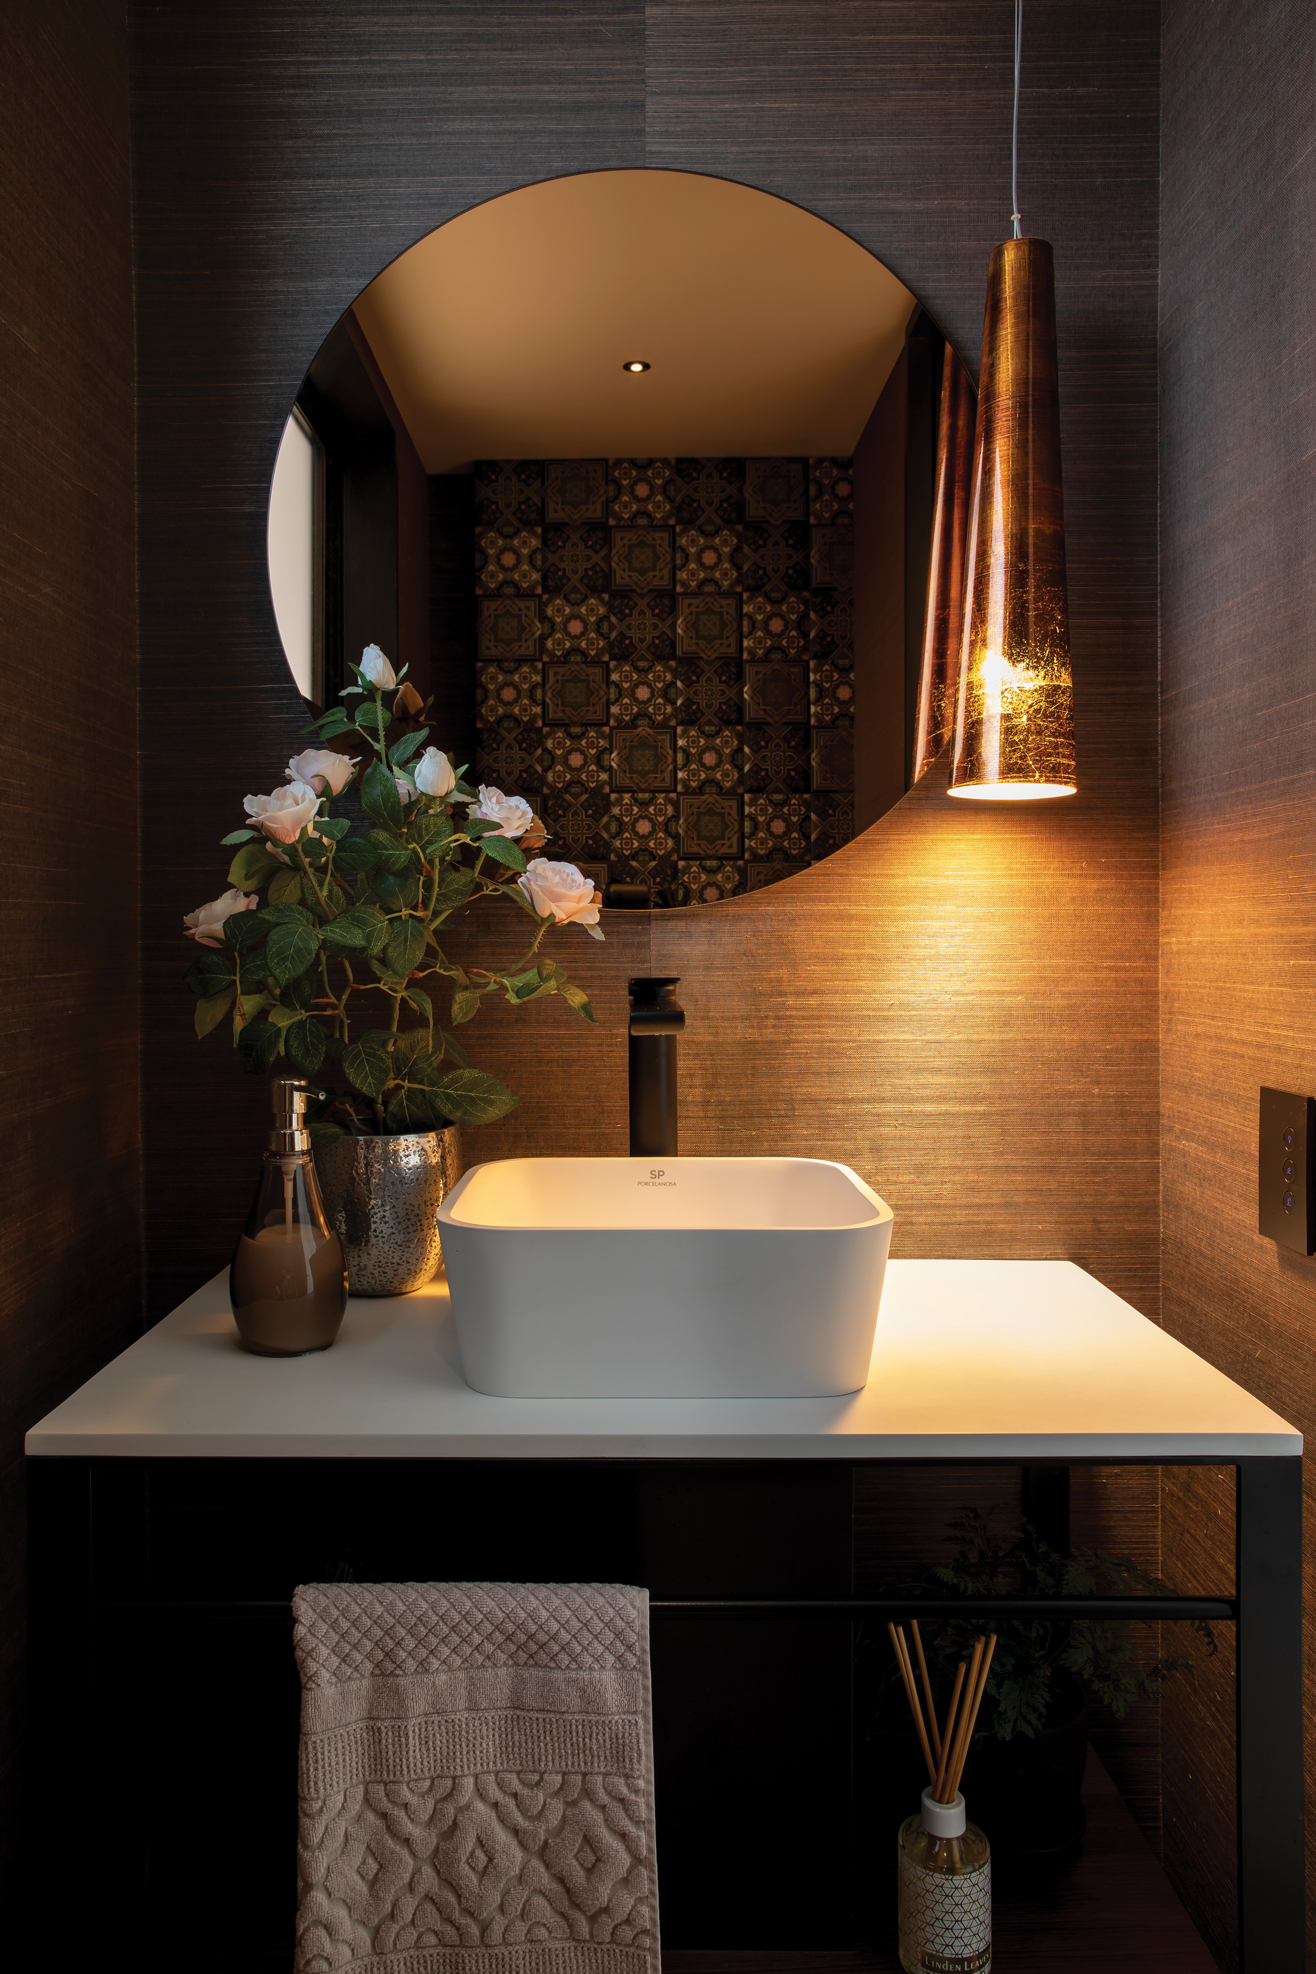 POWDER ROOM : A boudoir effect WC with Porcelanosa vanity and textured wallpaper.